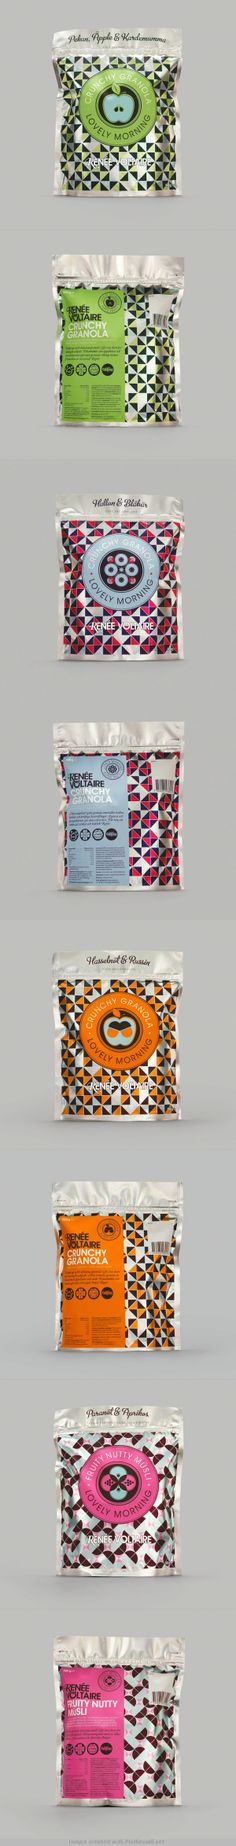 Lovely Morning cereal packaging by Renee Voltaire Cereal Packaging, Fruit Packaging, Cool Packaging, Food Packaging Design, Brand Packaging, Label Design, Graphic Design, Package Design, Branding